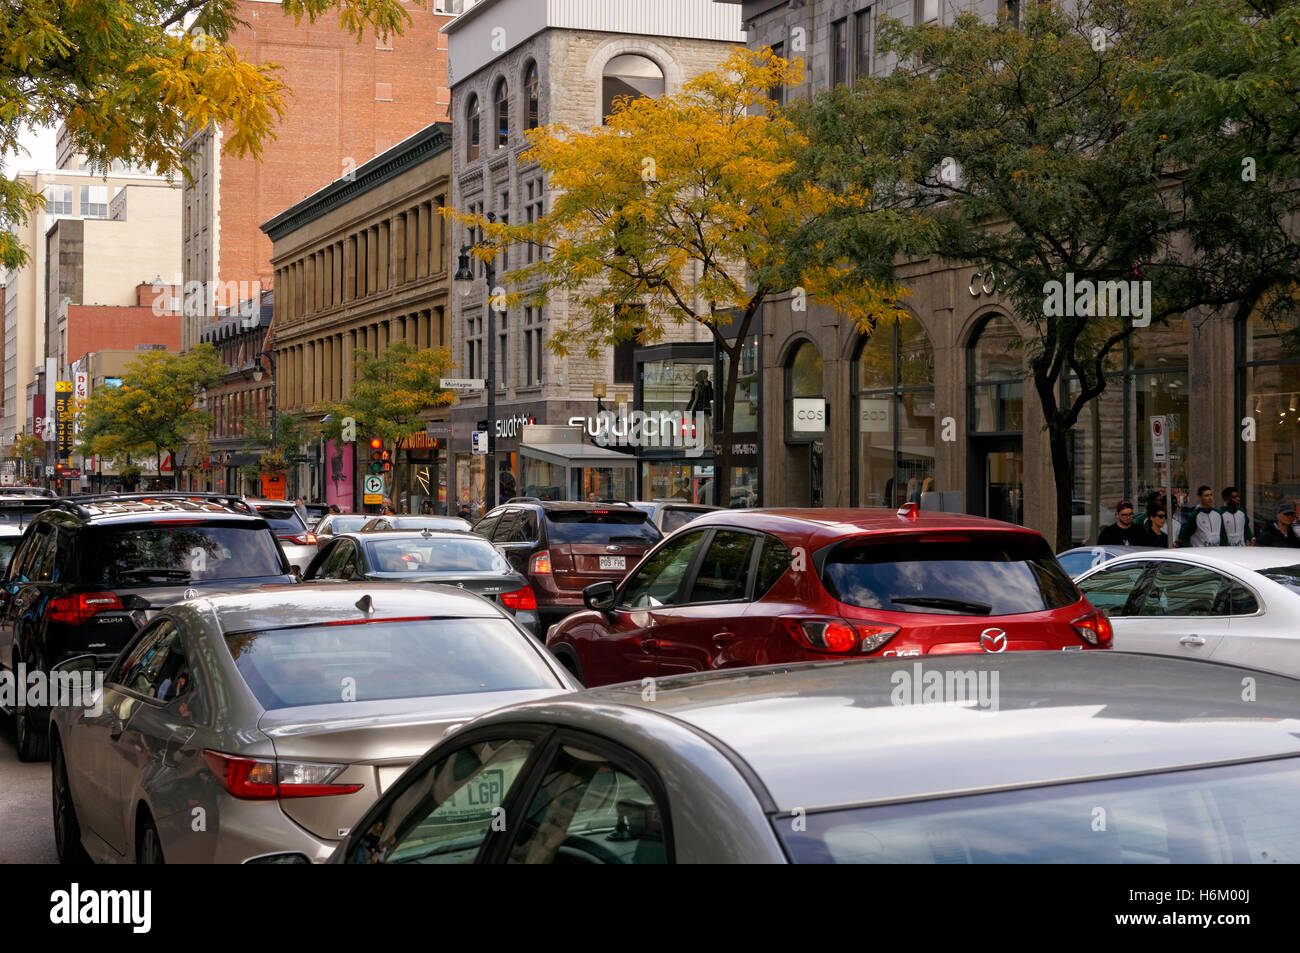 Traffic congestion on Rue Sainte-Catherine or Saint Catherine Street in downtown Montreal, Quebec, Canada - Stock Image